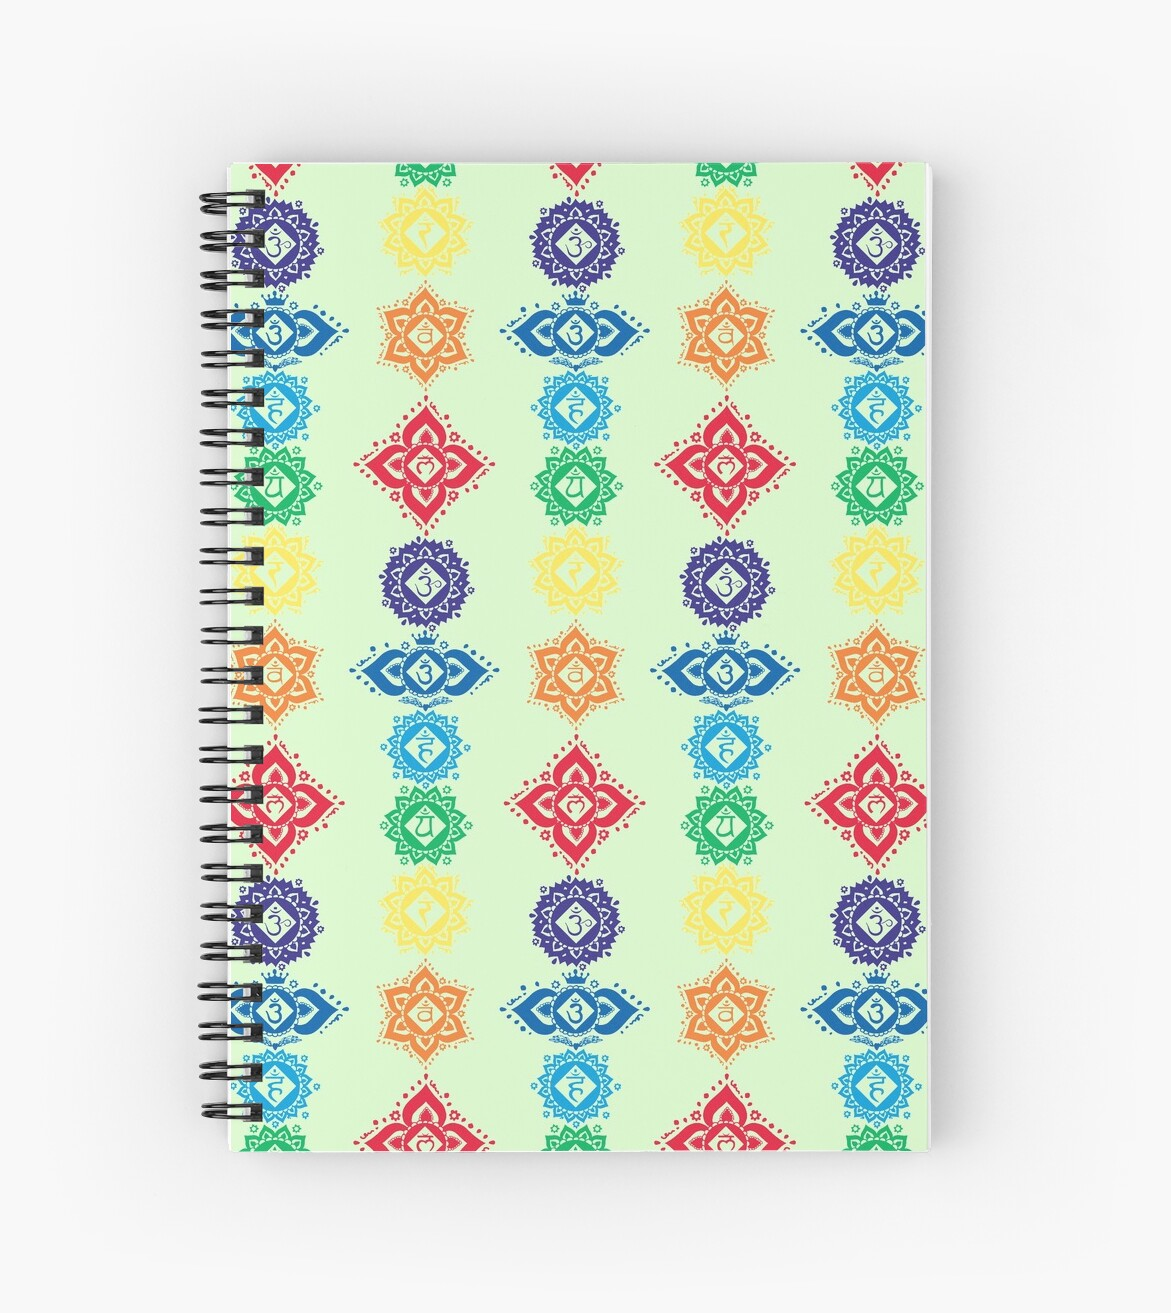 Floral Seven 7 Chakra Symbols For Yoga Spiral Notebooks By Buy Cool